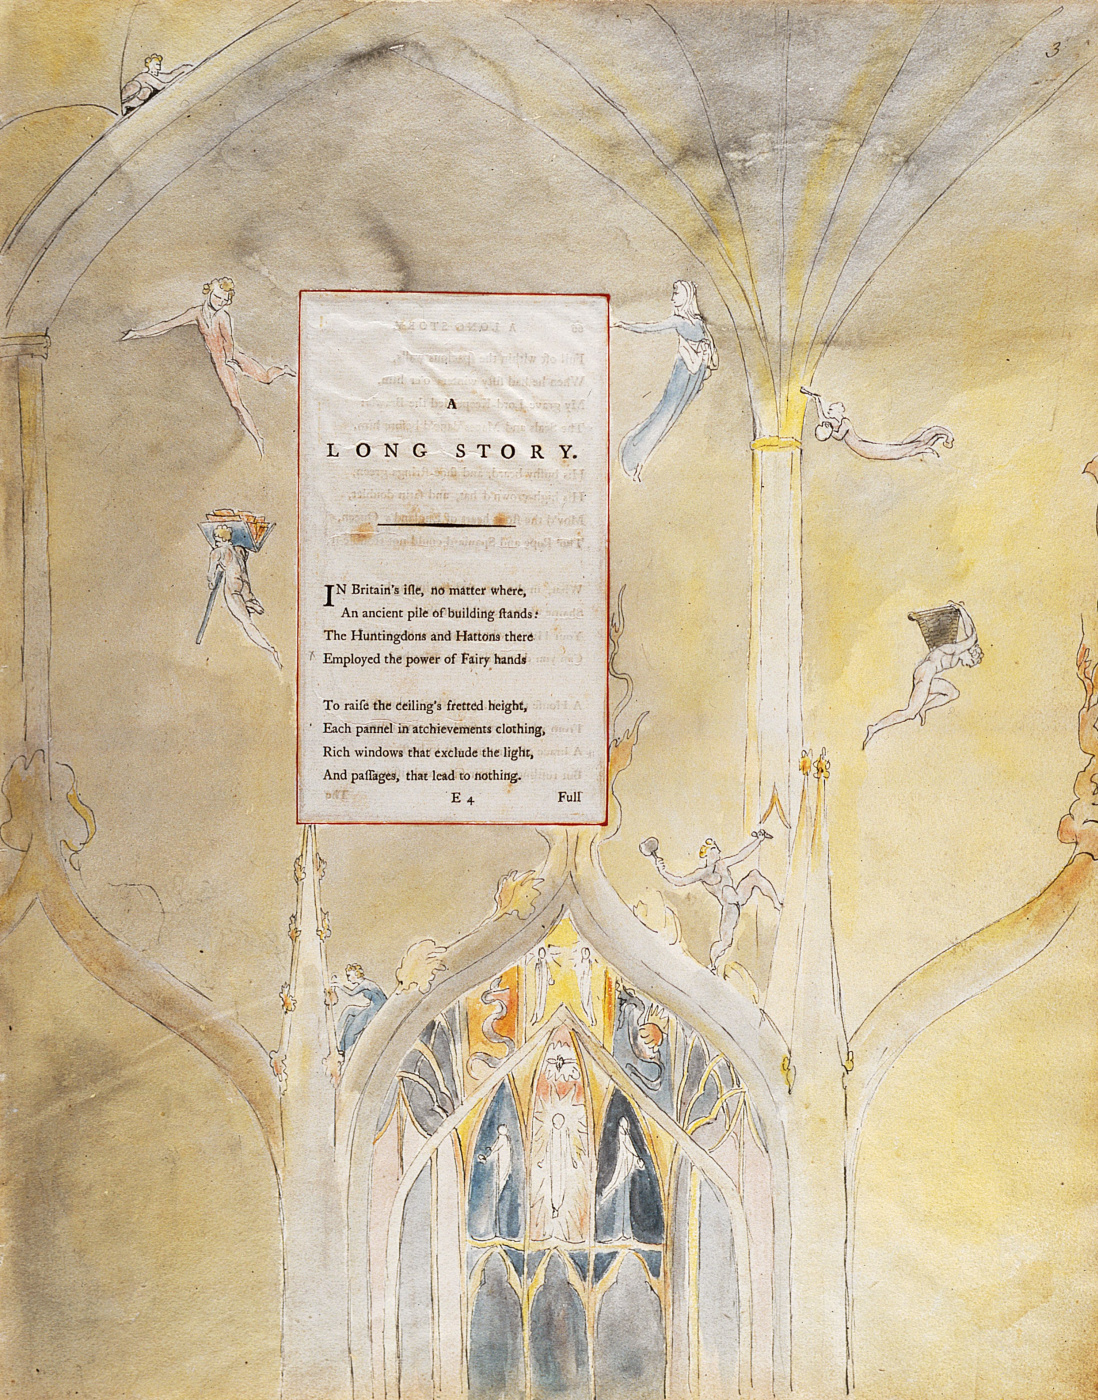 William Blake. Illustrations to the poems. Long story. Sheet 3. Beginning of the poem